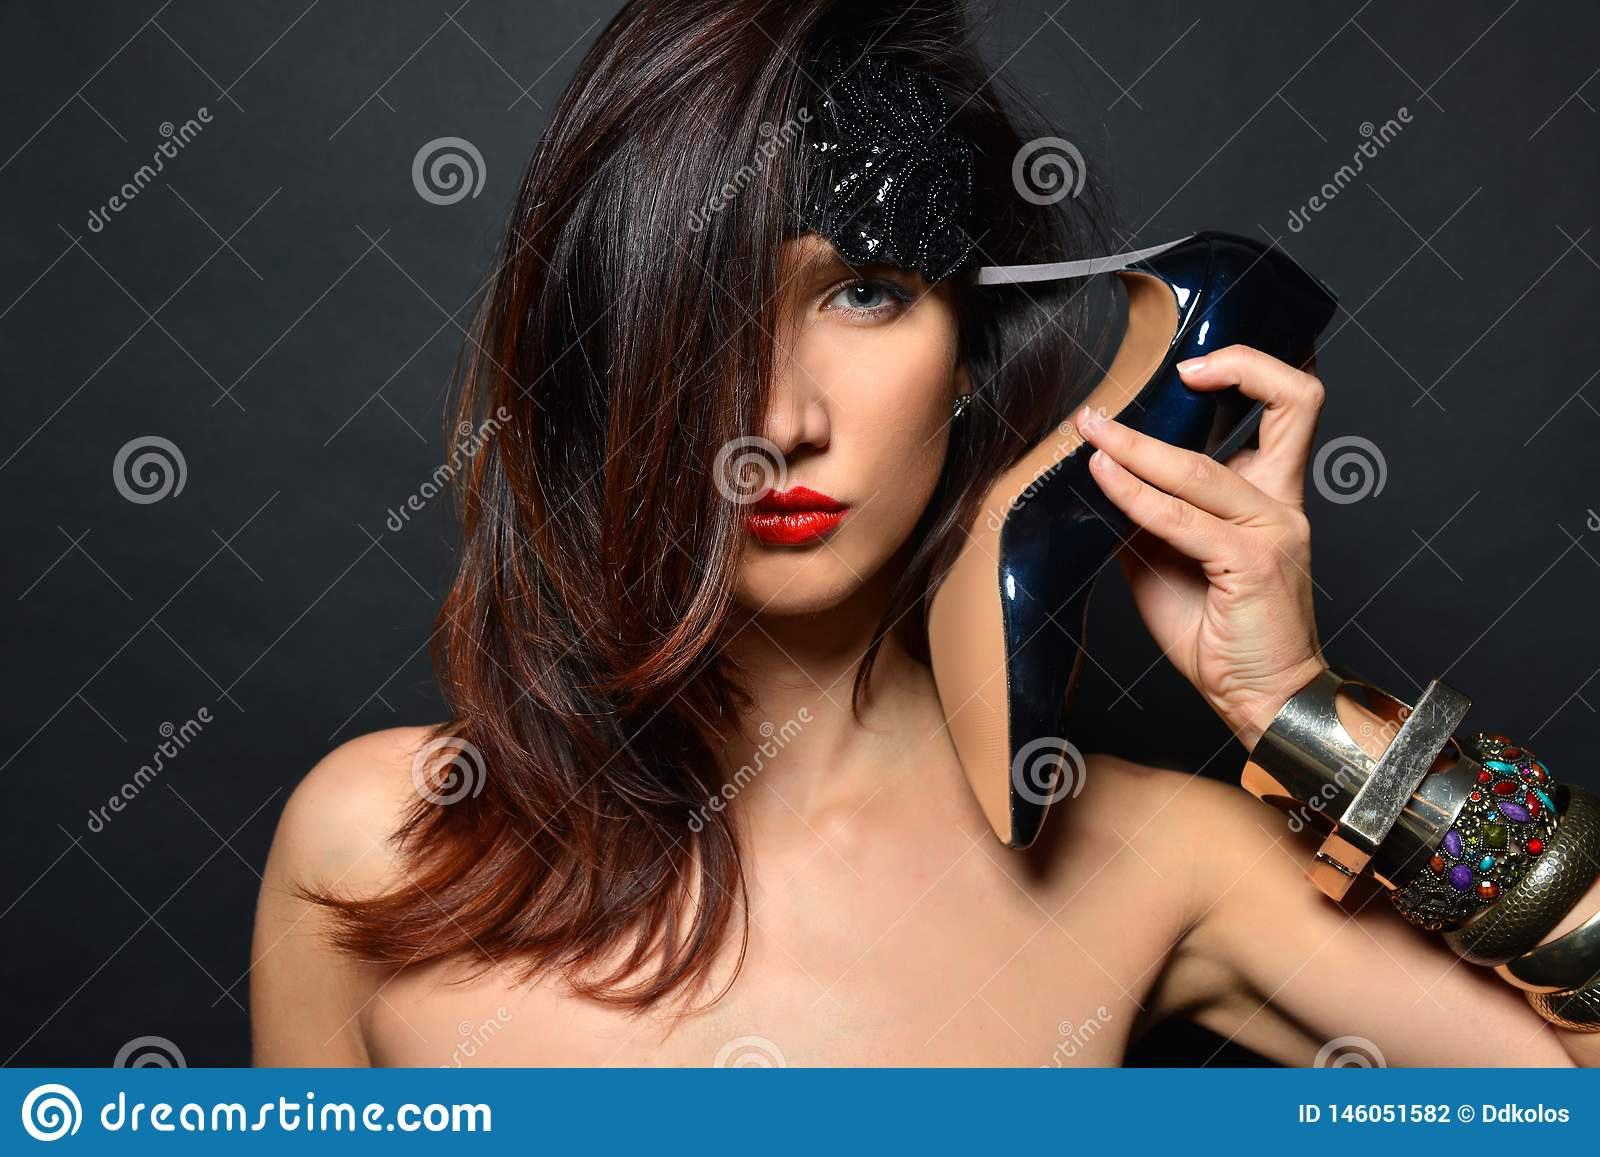 Girl with long hair, red lips and jewelry from bracelets of black high-heeled shoes Put the heel to his temple like a gun